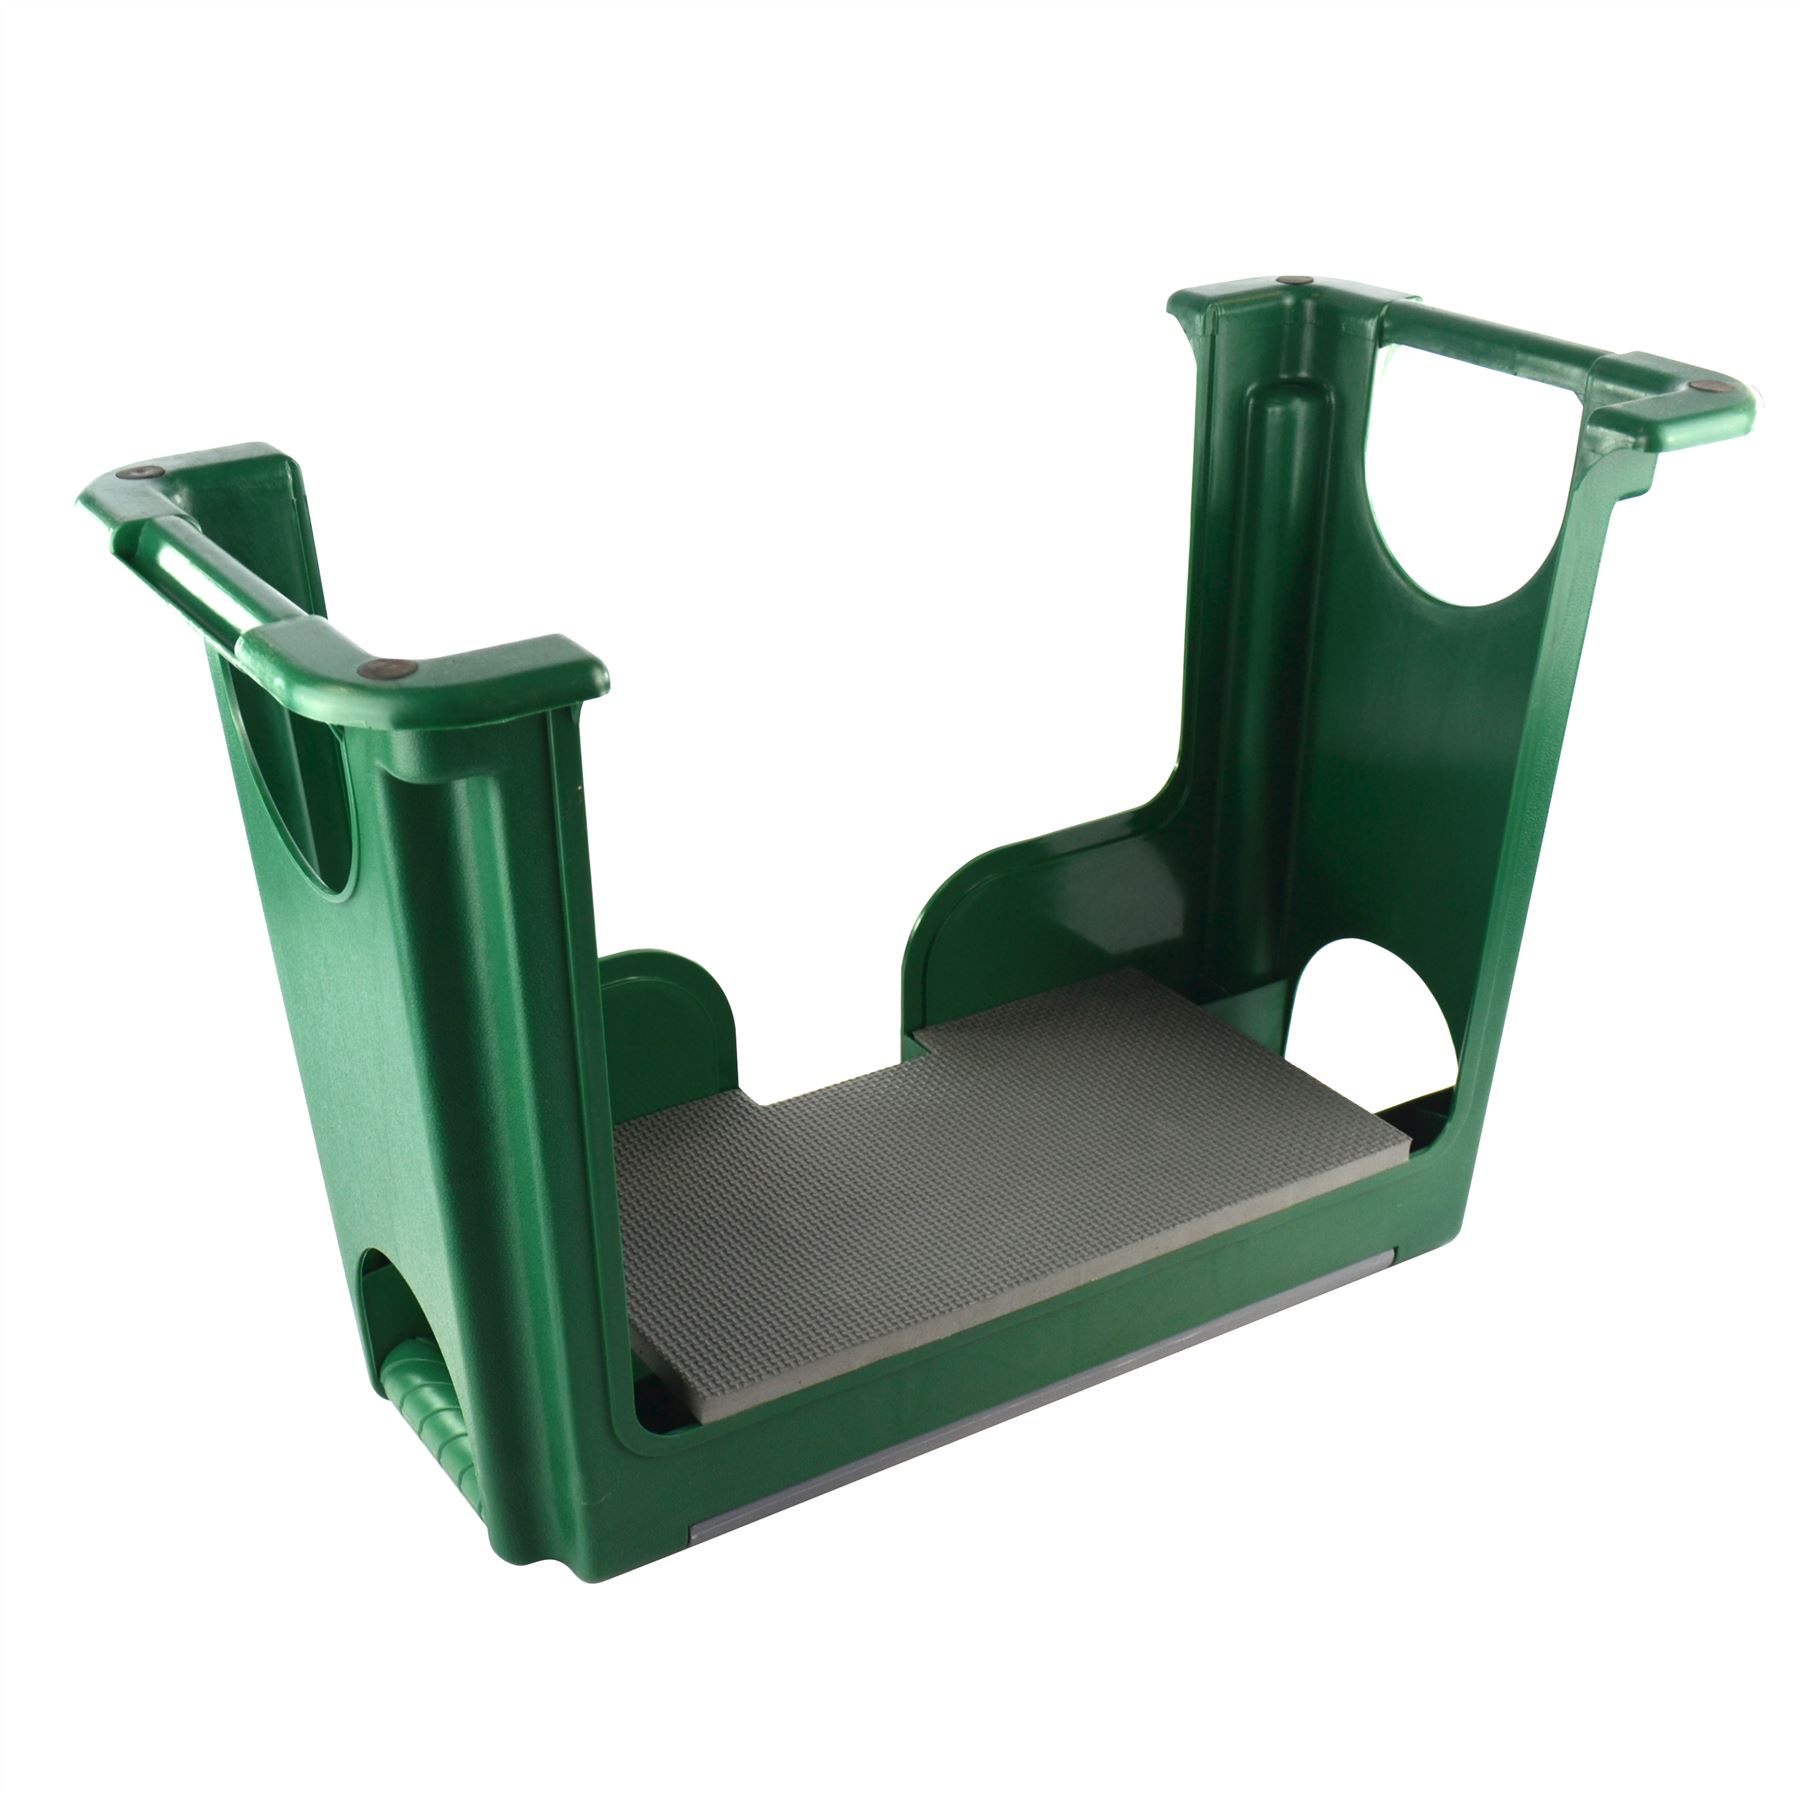 Portable plastic garden kneeler foam chair padded storage for Gardening kneeling stool